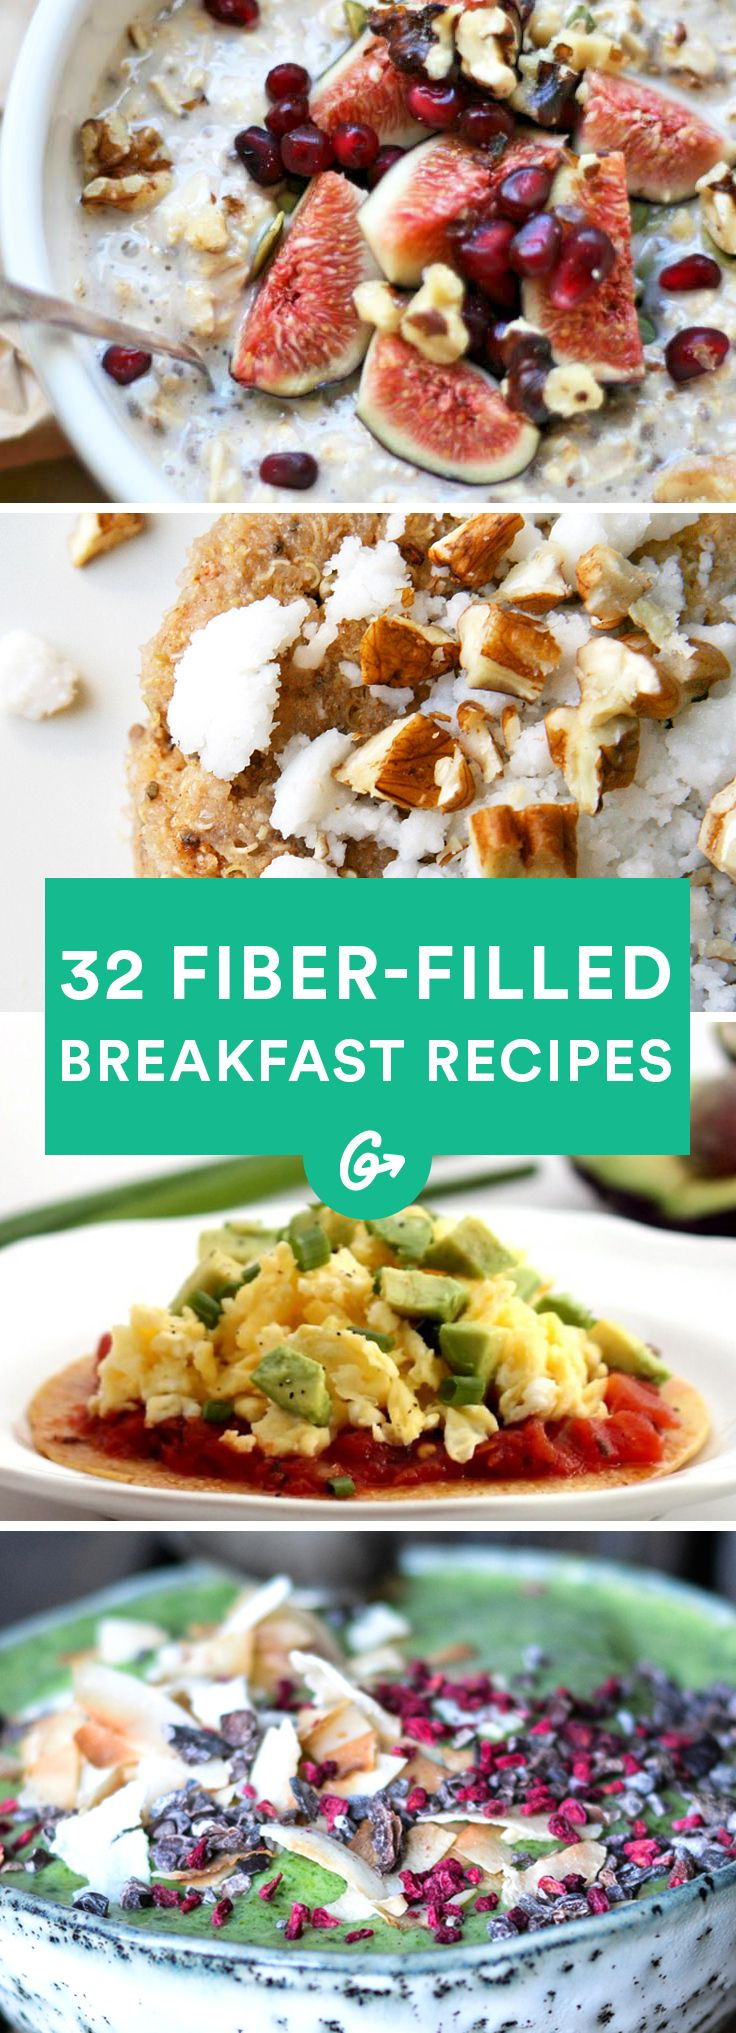 32 Quick Breakfasts That Will Keep You Full Until Lunch #fiber #breakfast #recipes http://greatist.com/eat/healthy-fiber-breakfast-recipes